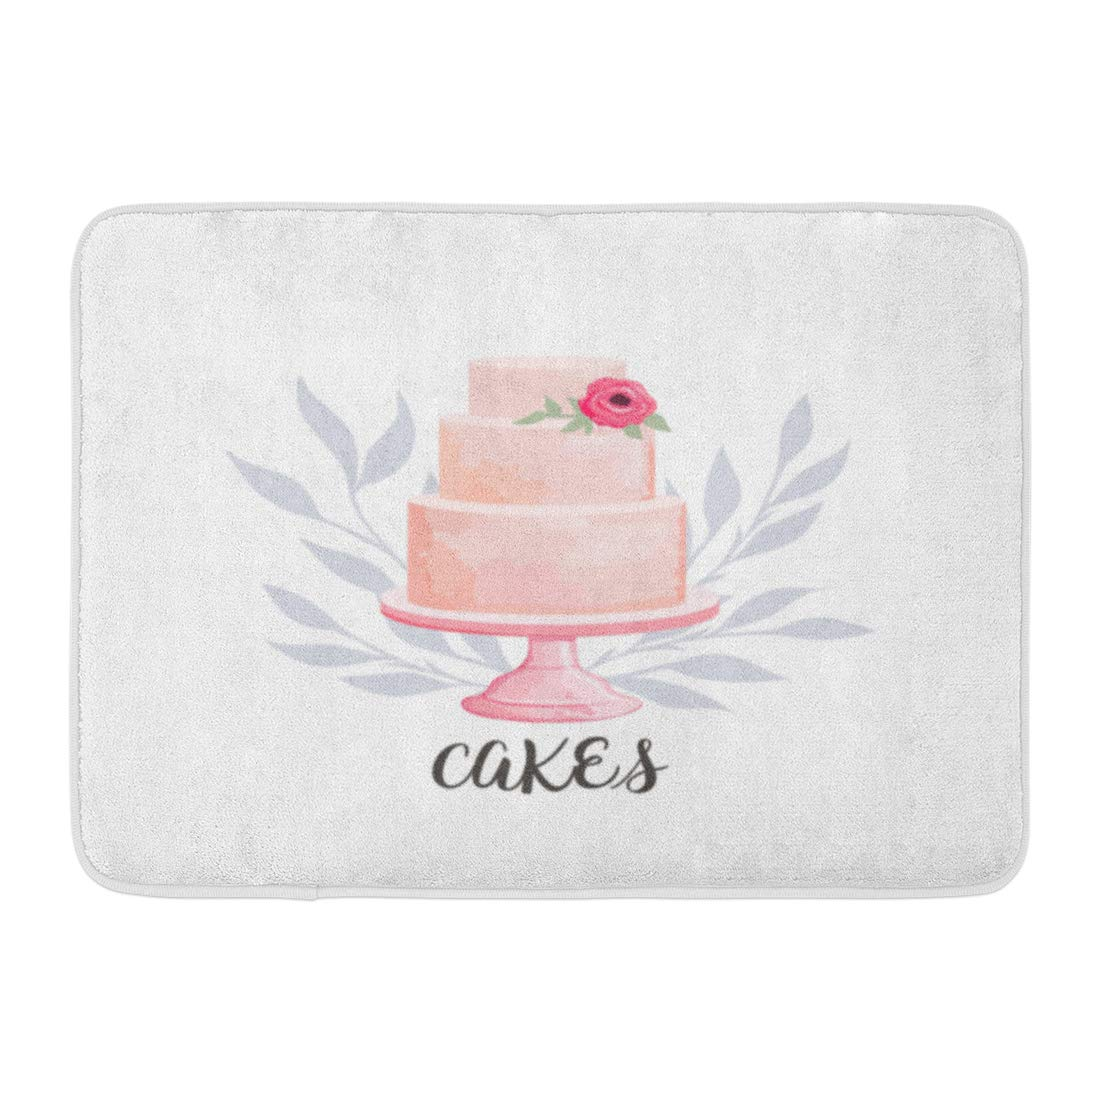 Emvency Bath Mat Badge Cream for Cake and Bakery with Floral Watercolor Style Flower Baked Bathroom Decor Rug 16'' x 24'' by Emvency